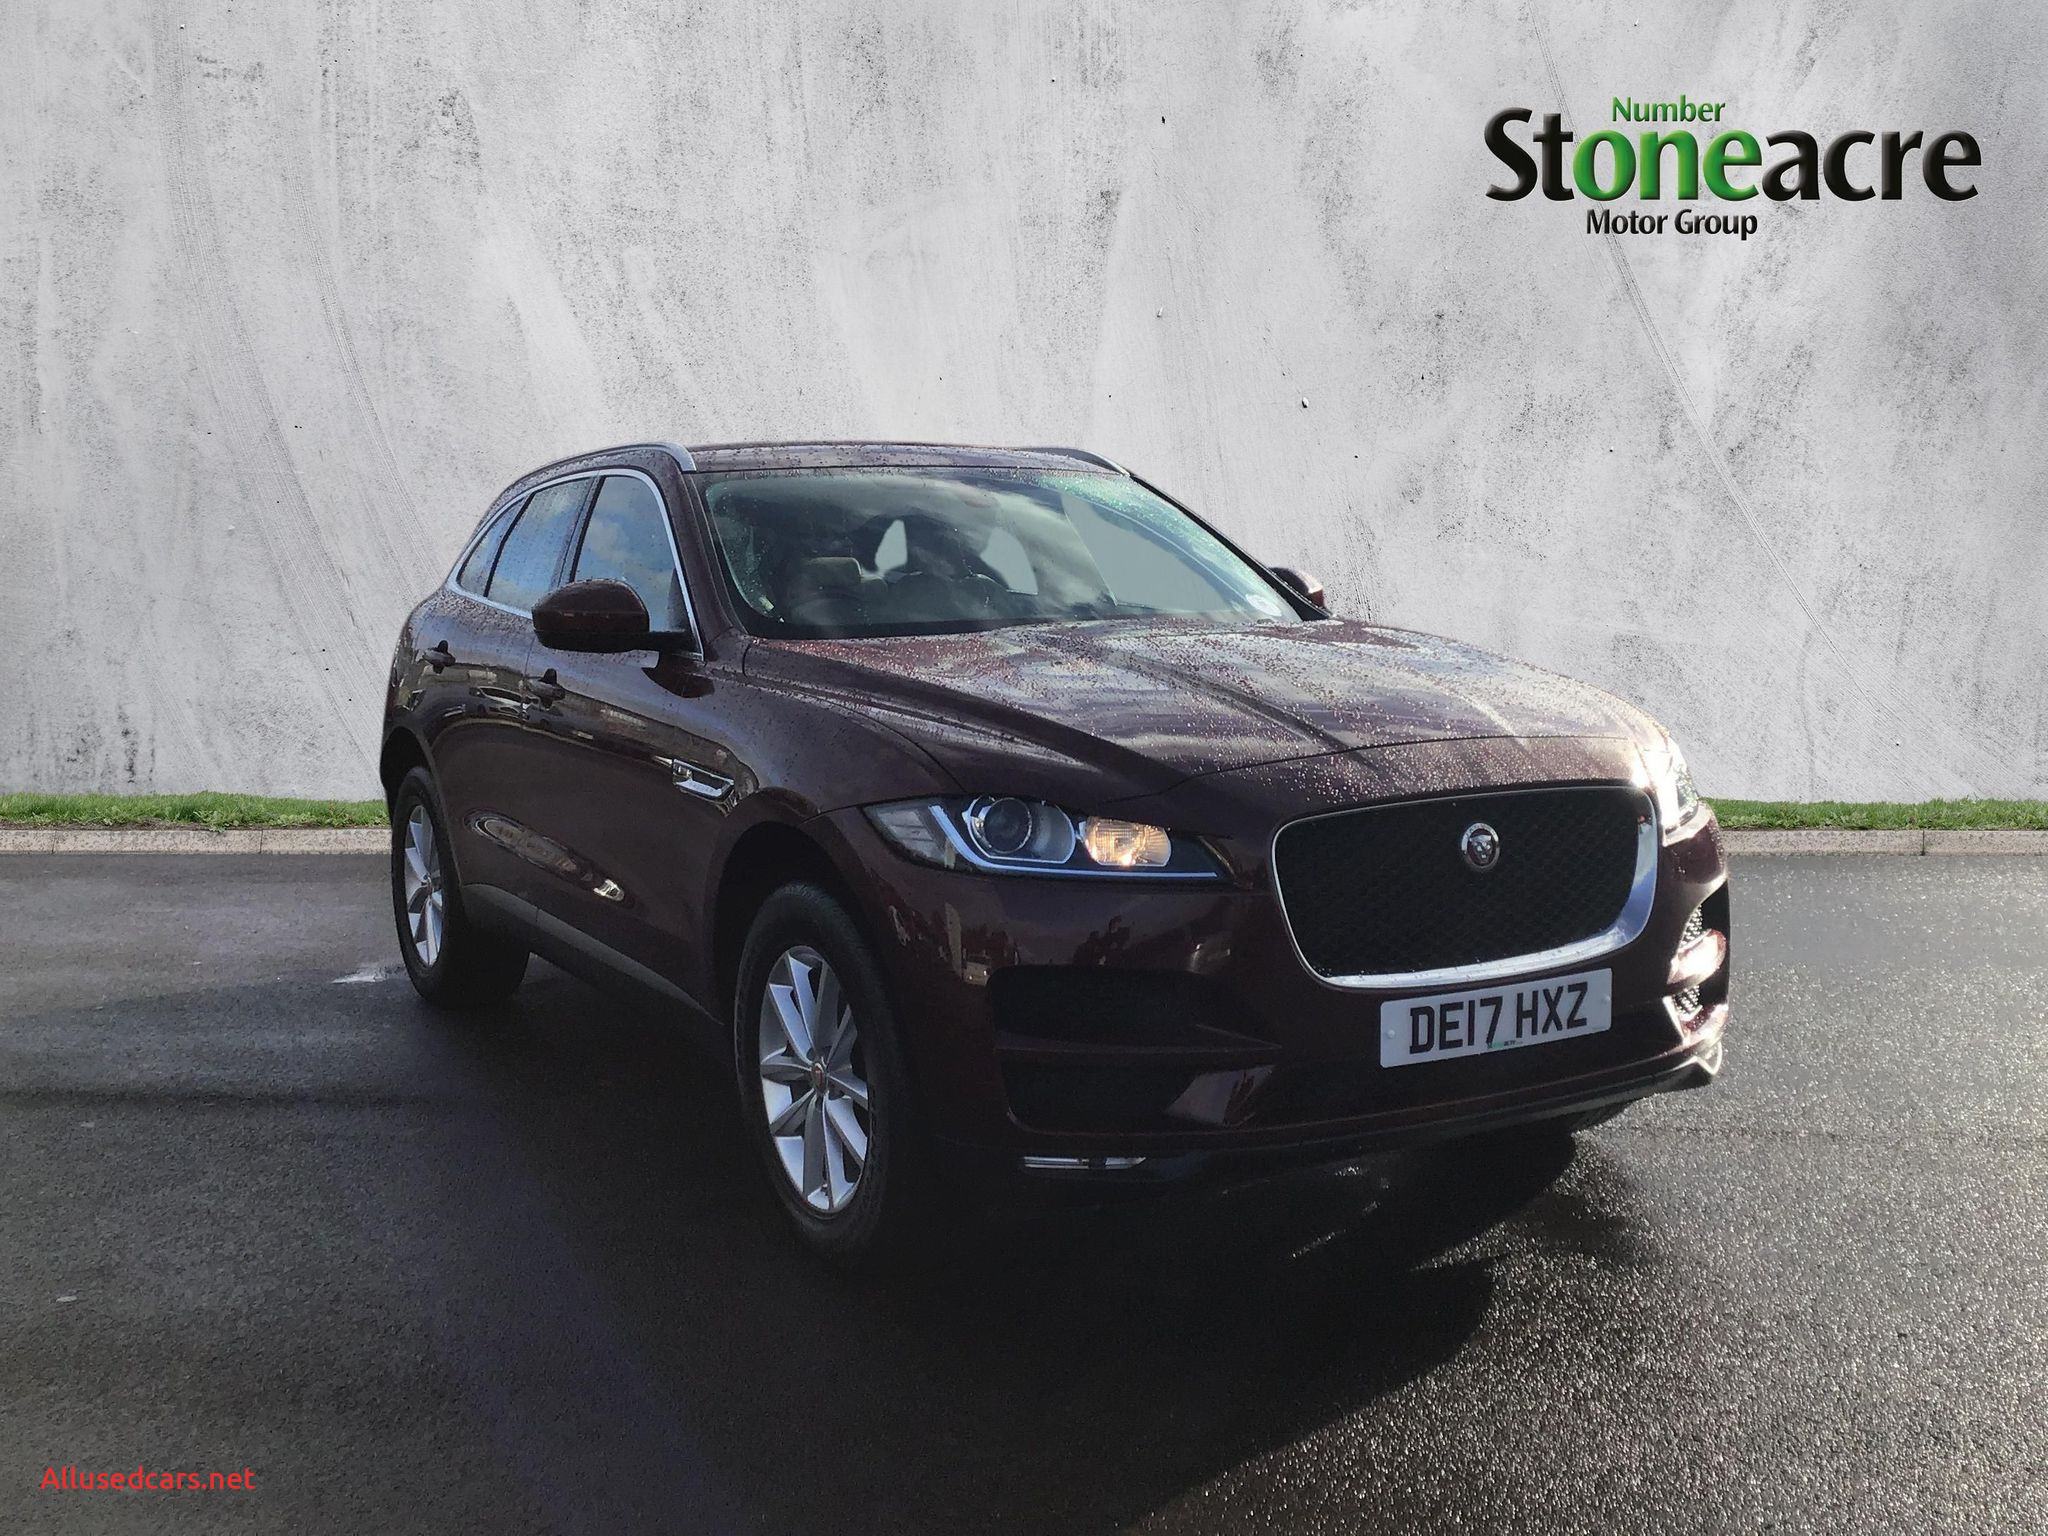 Used Cars for Sale 0 Apr Finance New Used Jaguar F Pace for Sale Stoneacre